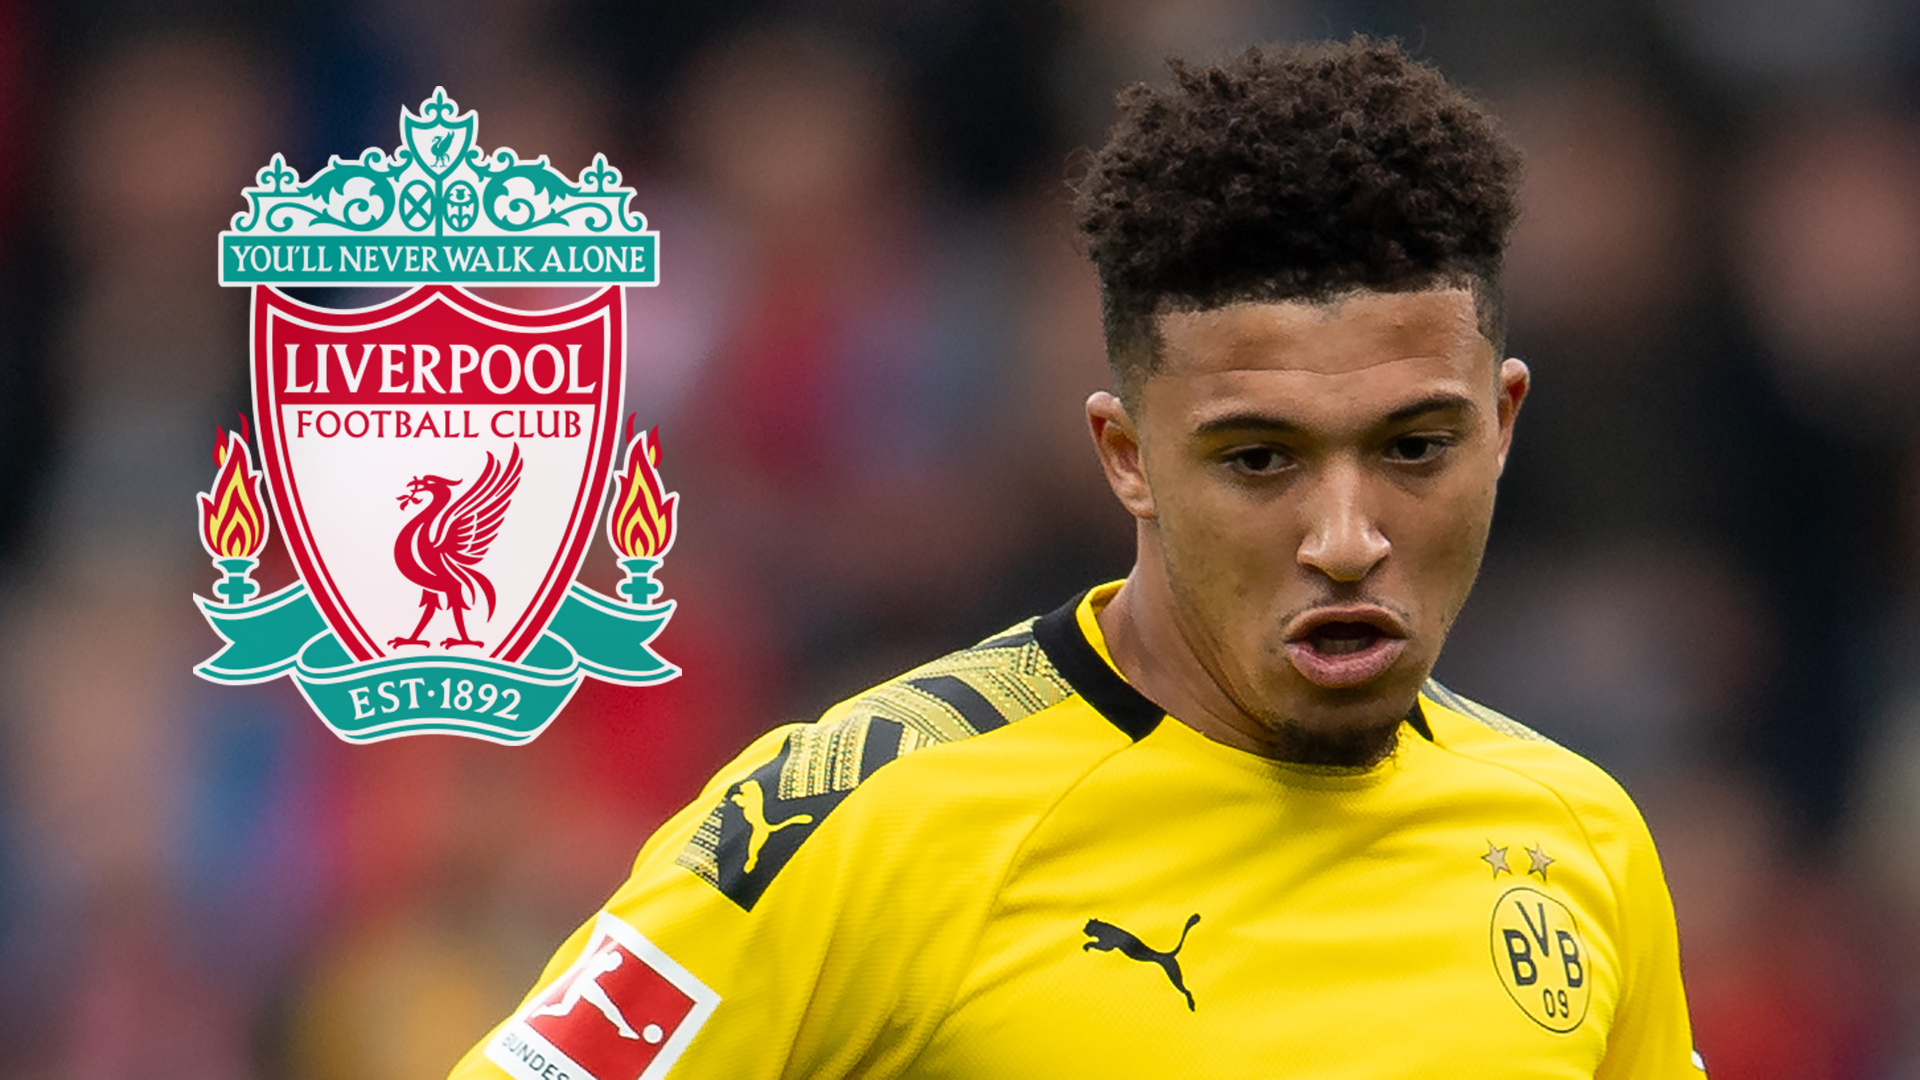 Dietmar Hamann claims Liverpool are lining up bid for Jadon Sancho